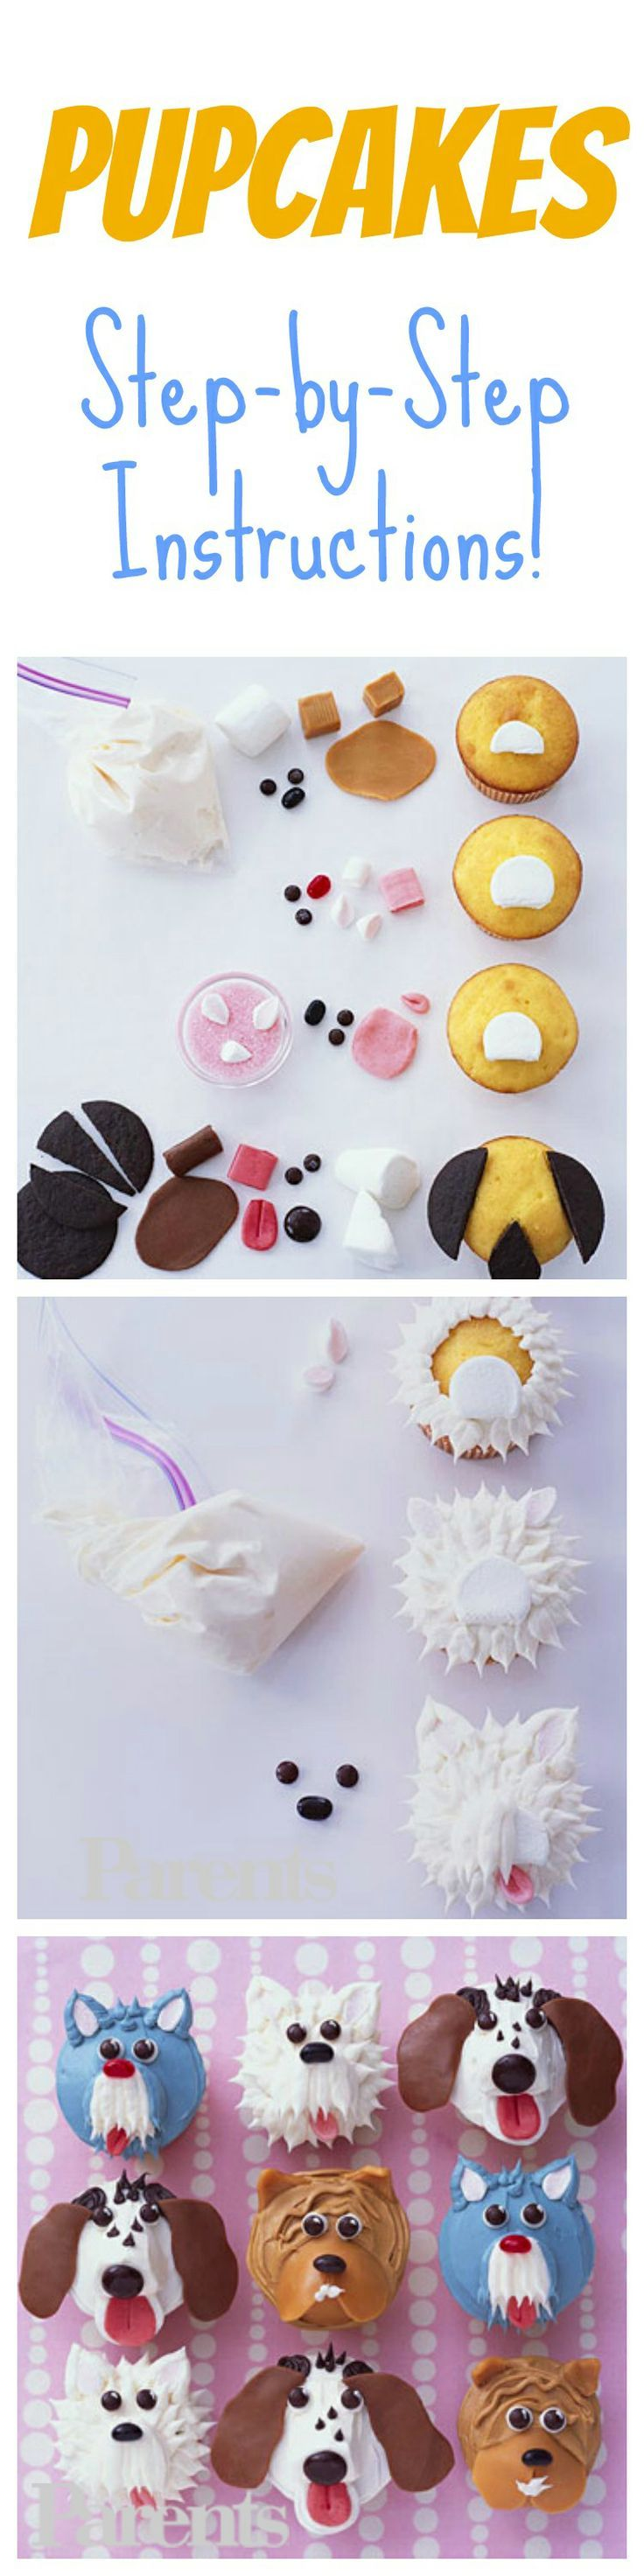 "These puppy cupcakes aren't ""ruff"" to make. Bake and decorate a batch with your kids for their next party!: Dog Cupcakes For Kids, Puppy Cupcakes For Kids, Cupcakes Cookies Pies Sweets, Decorated Cupcakes For Kids, Cakepops Cookies Cupcakes, Puppy Dog Cupcake, Cupcakes Aren T, Animal Cupcakes"